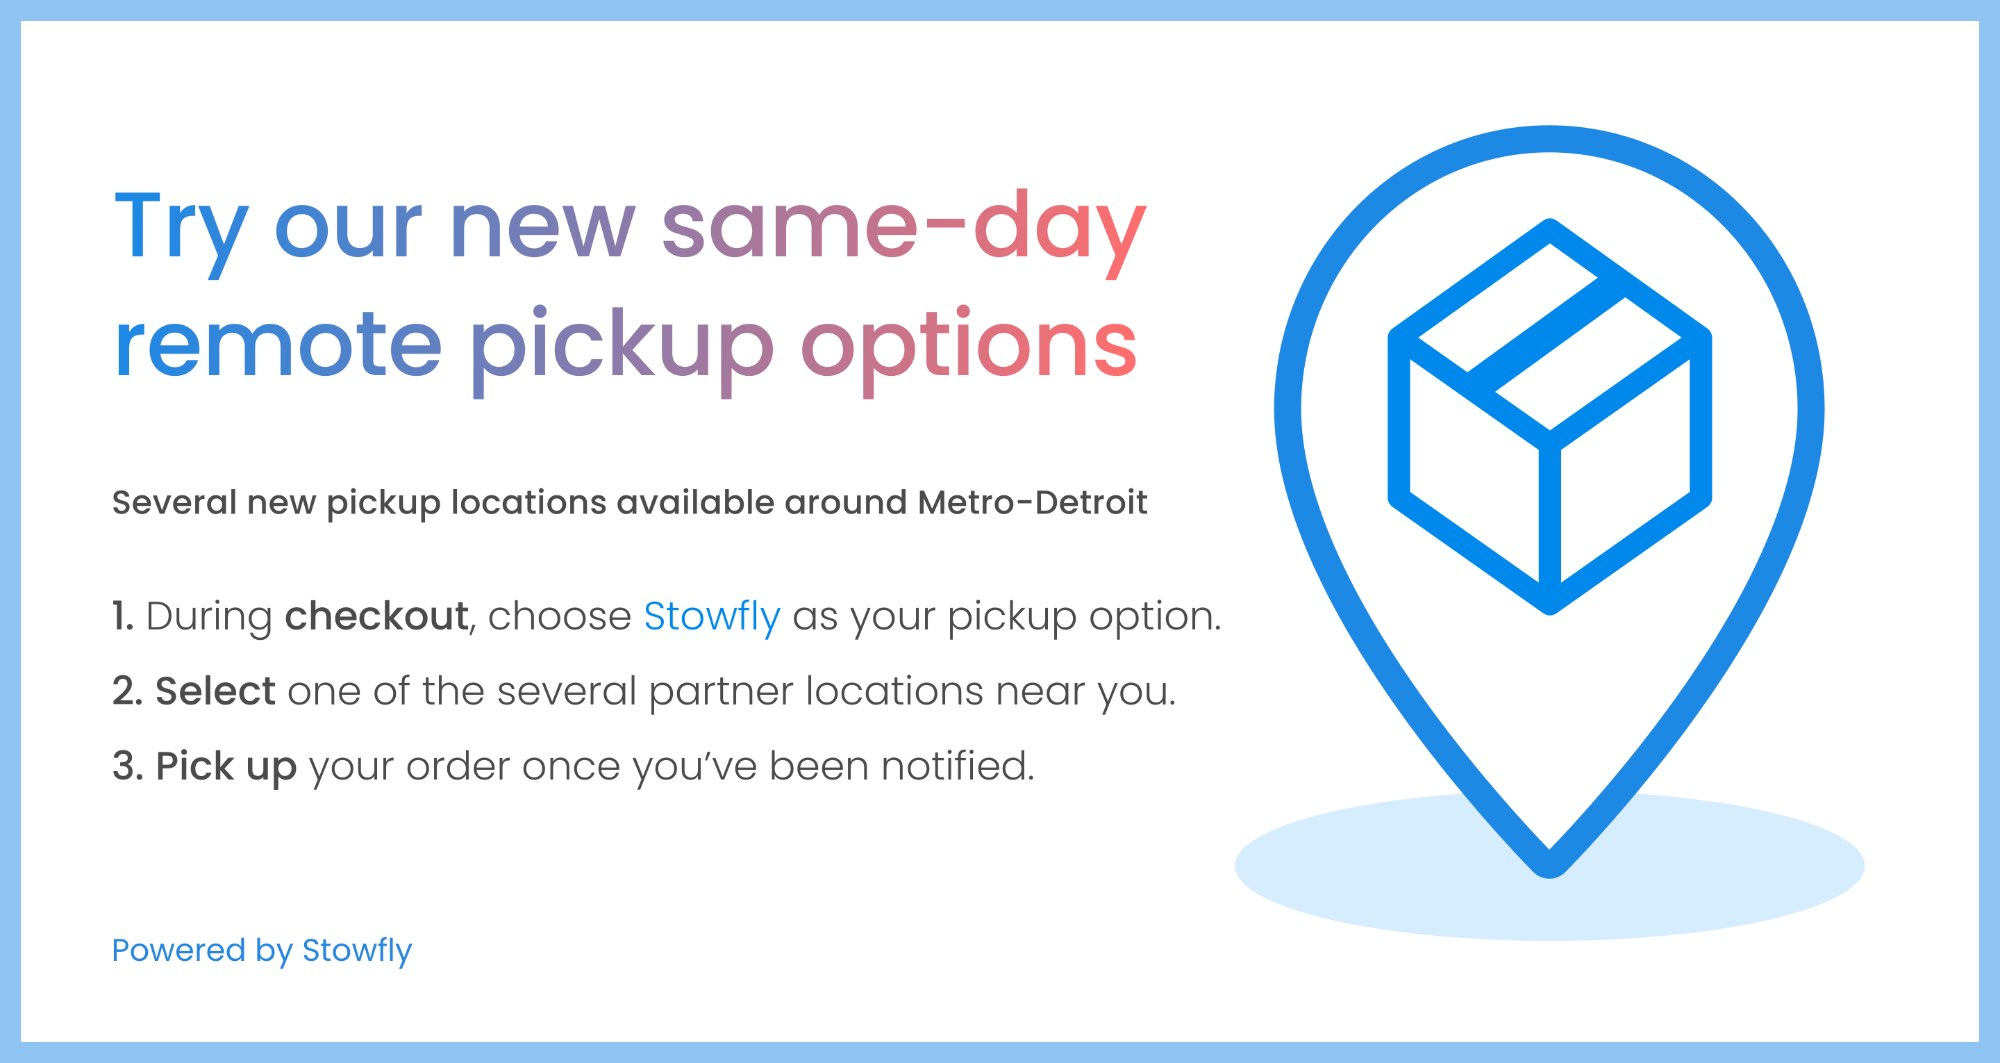 Now You Can Pickup Your Order at a Location Near You!